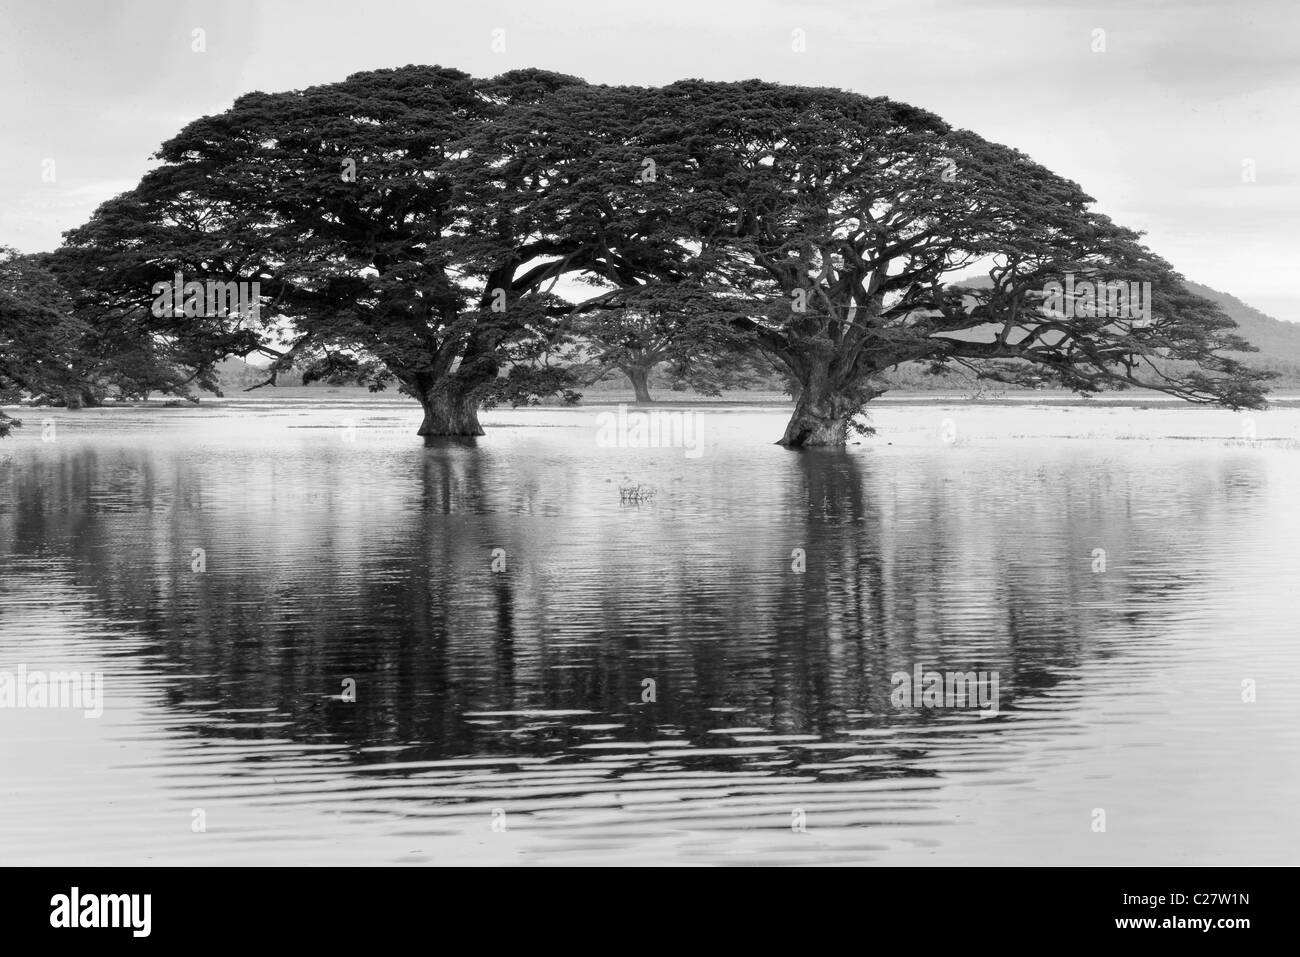 Rain Trees (Samanea saman) reflected in seasonal pond, Sri Lanka - Stock Image